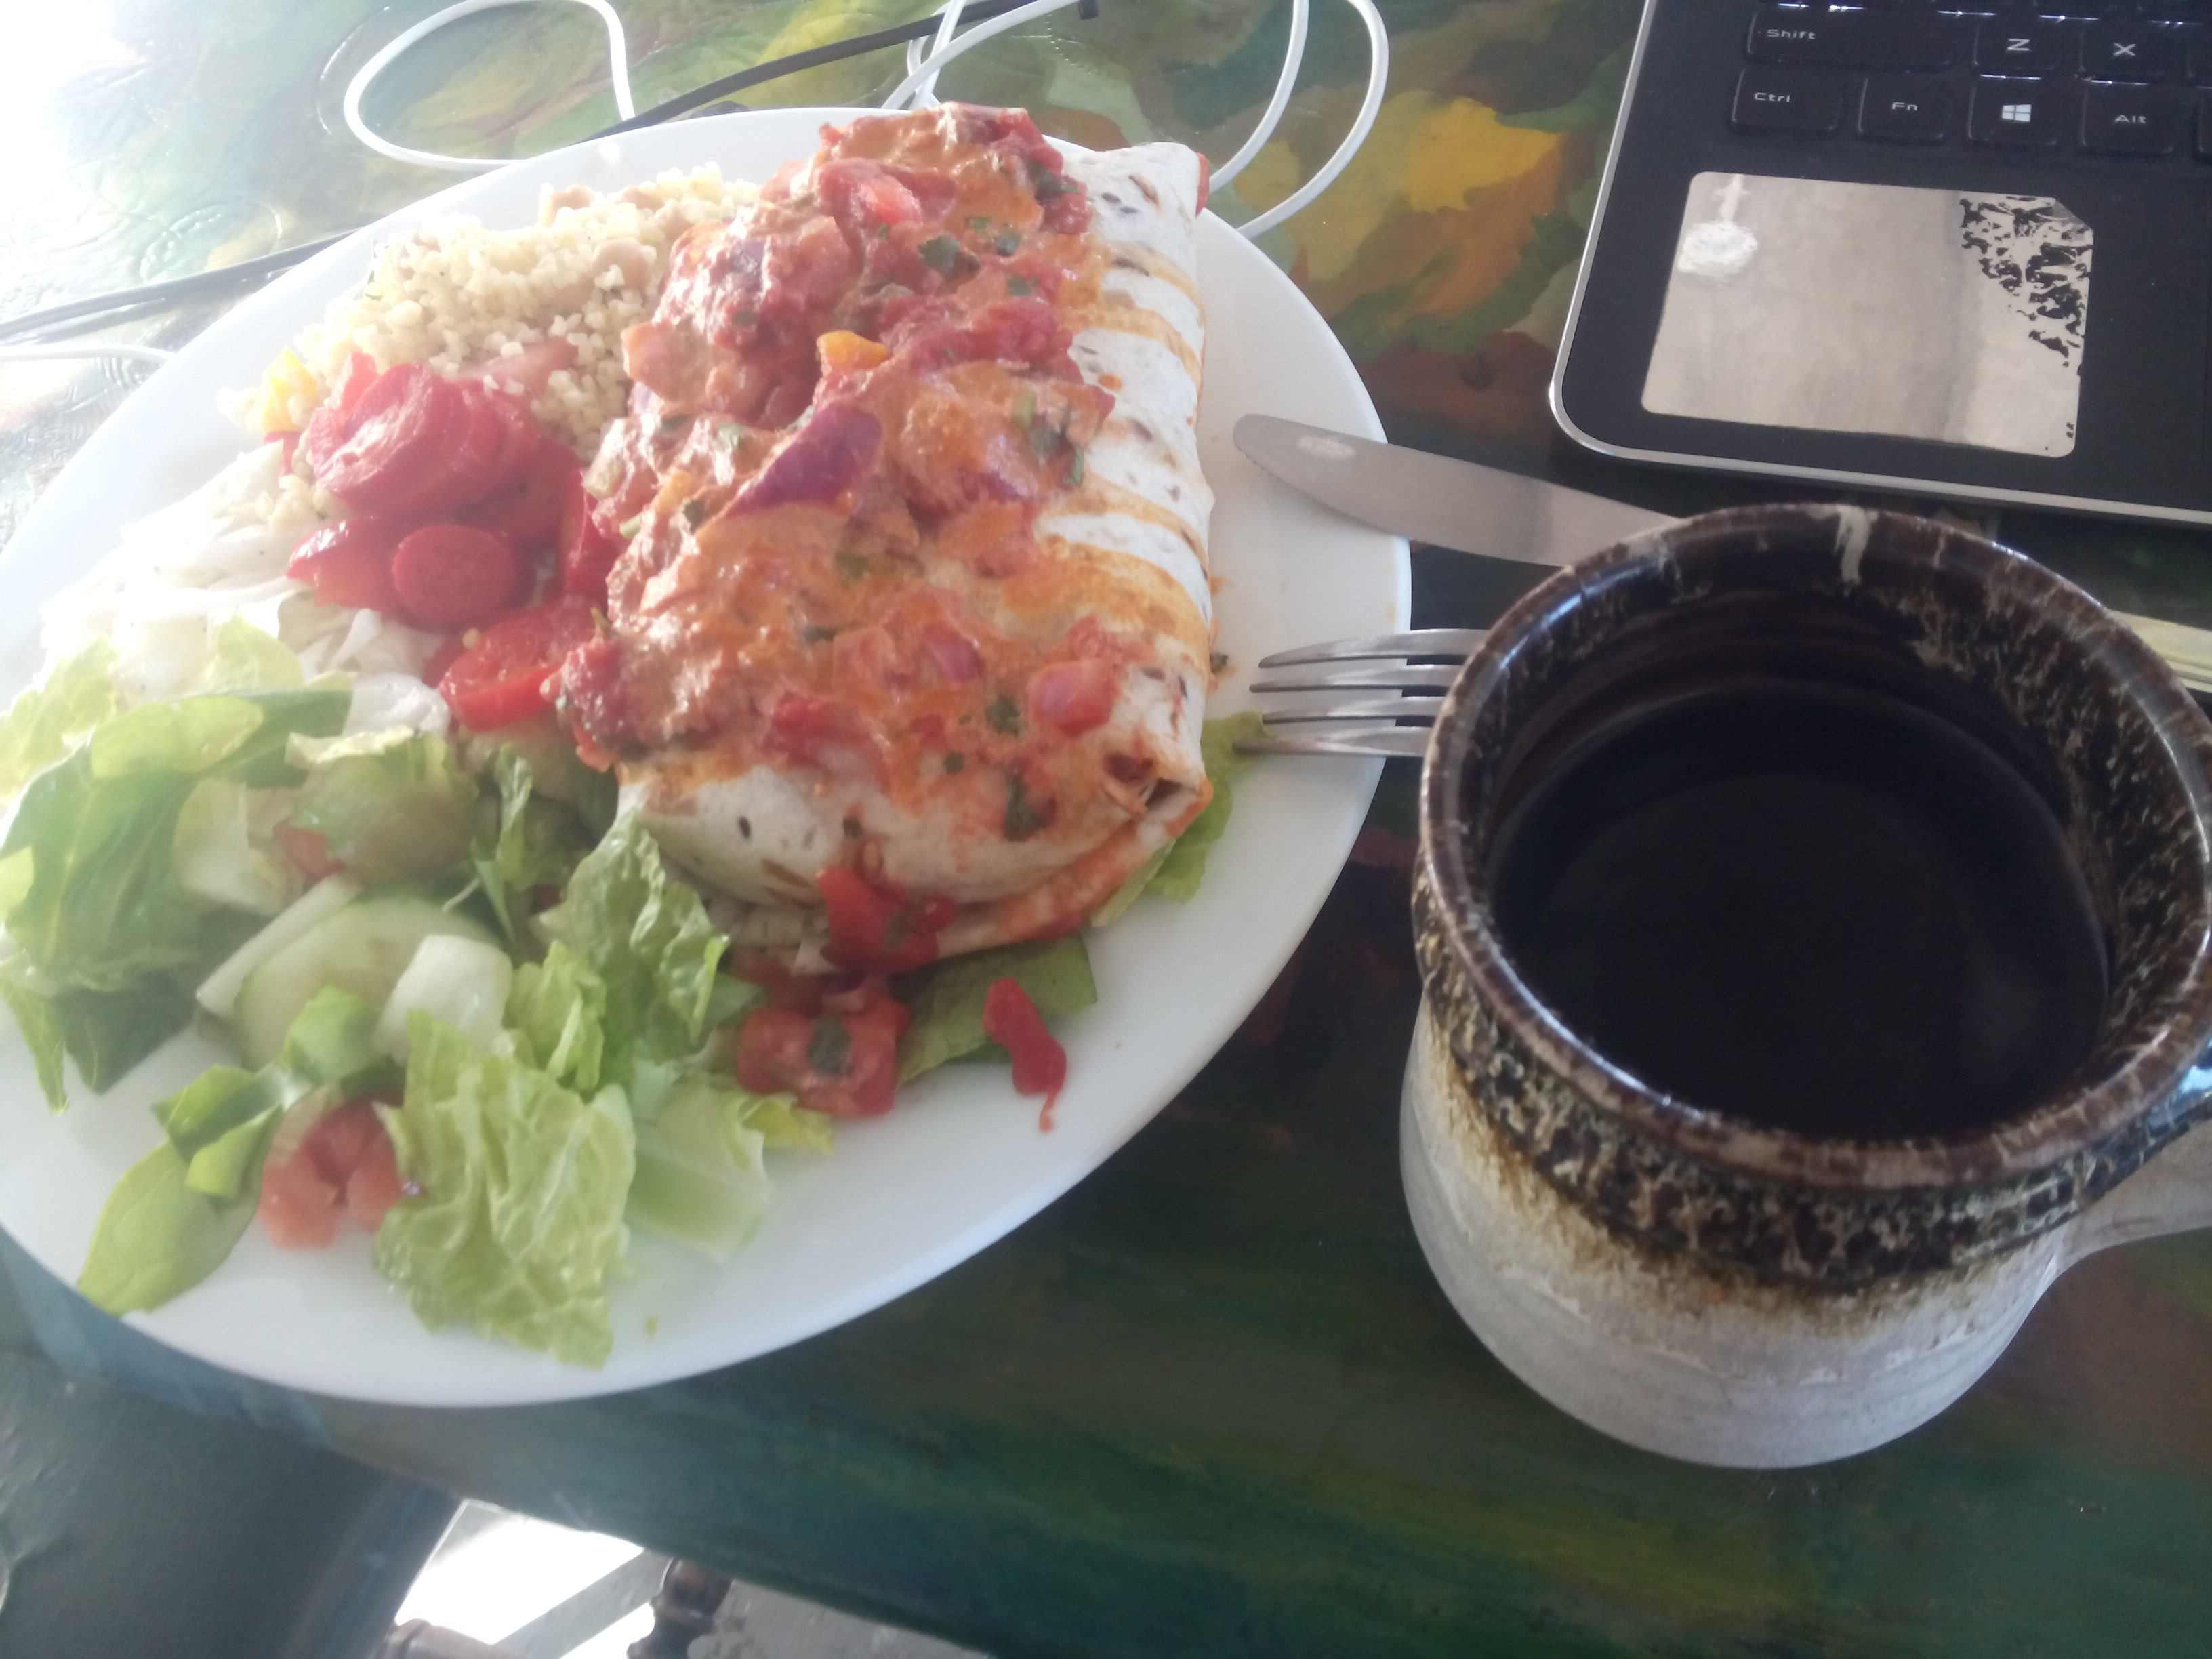 A burrito on a plate smothered in sauce with side salad; a black coffee to the right, and the corner of a laptop keyboard